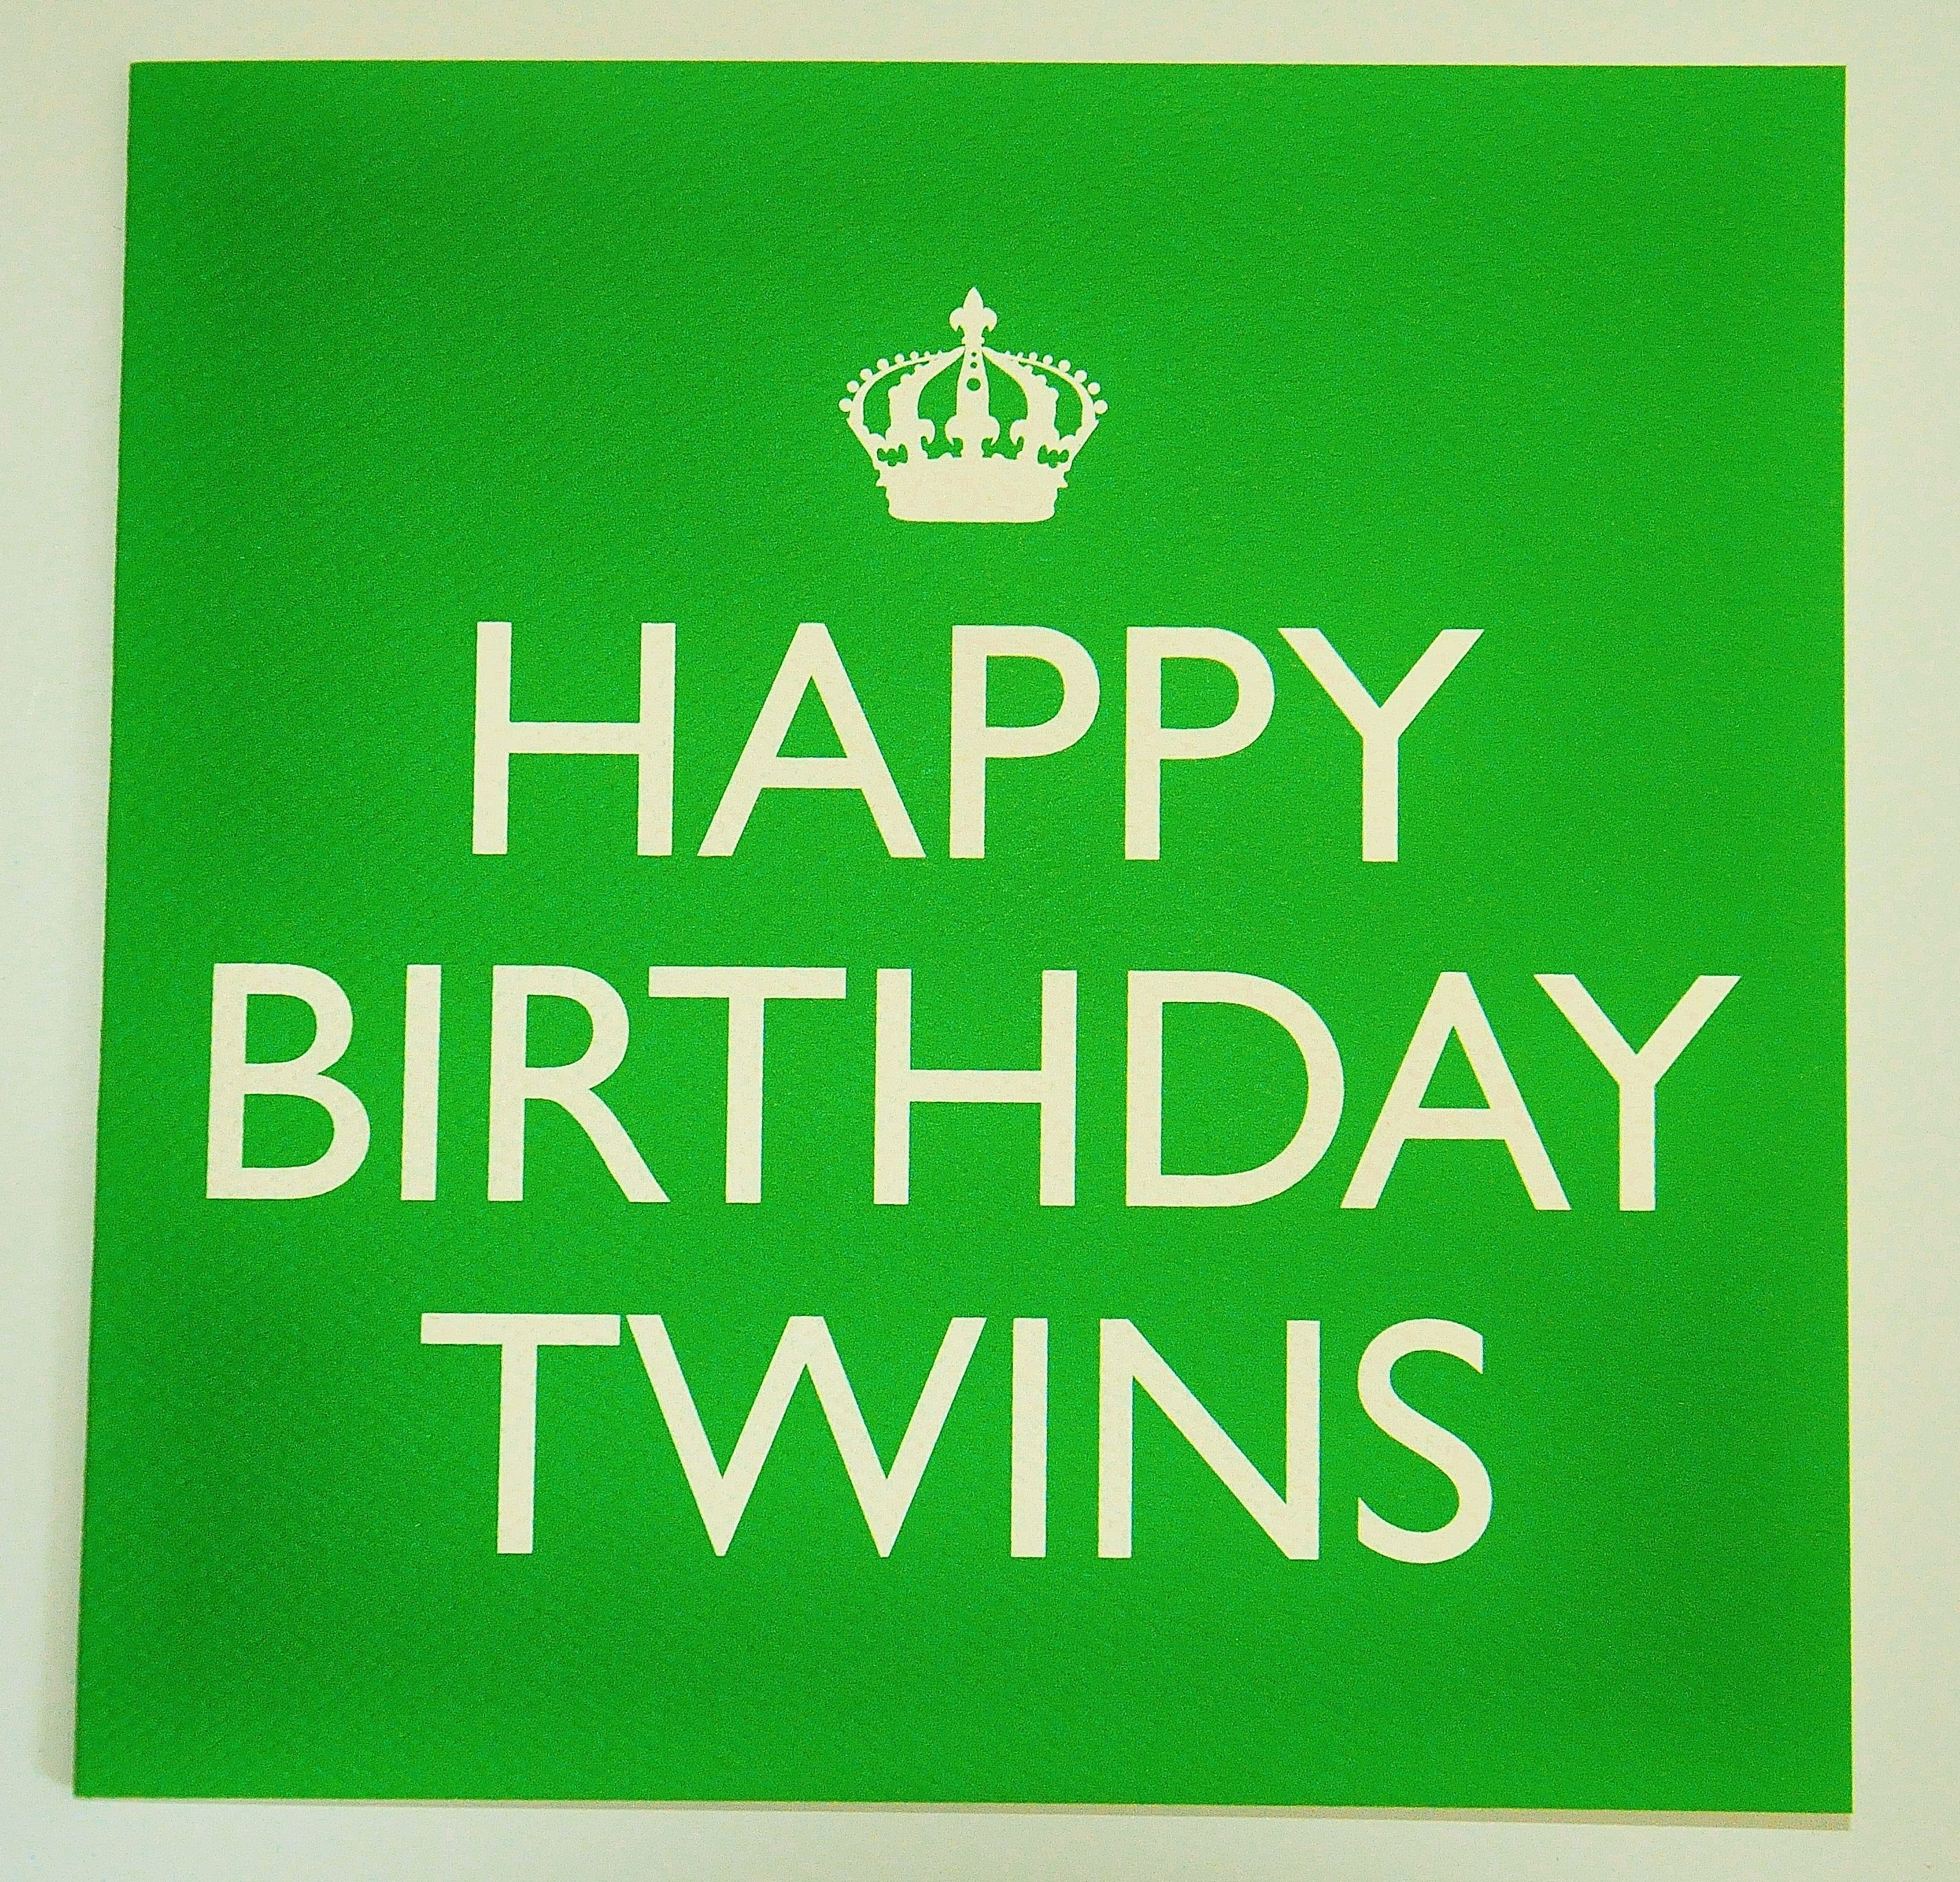 Happy birthday twins yahoo image search results happy birthday happy birthday twins yahoo image search results kristyandbryce Gallery